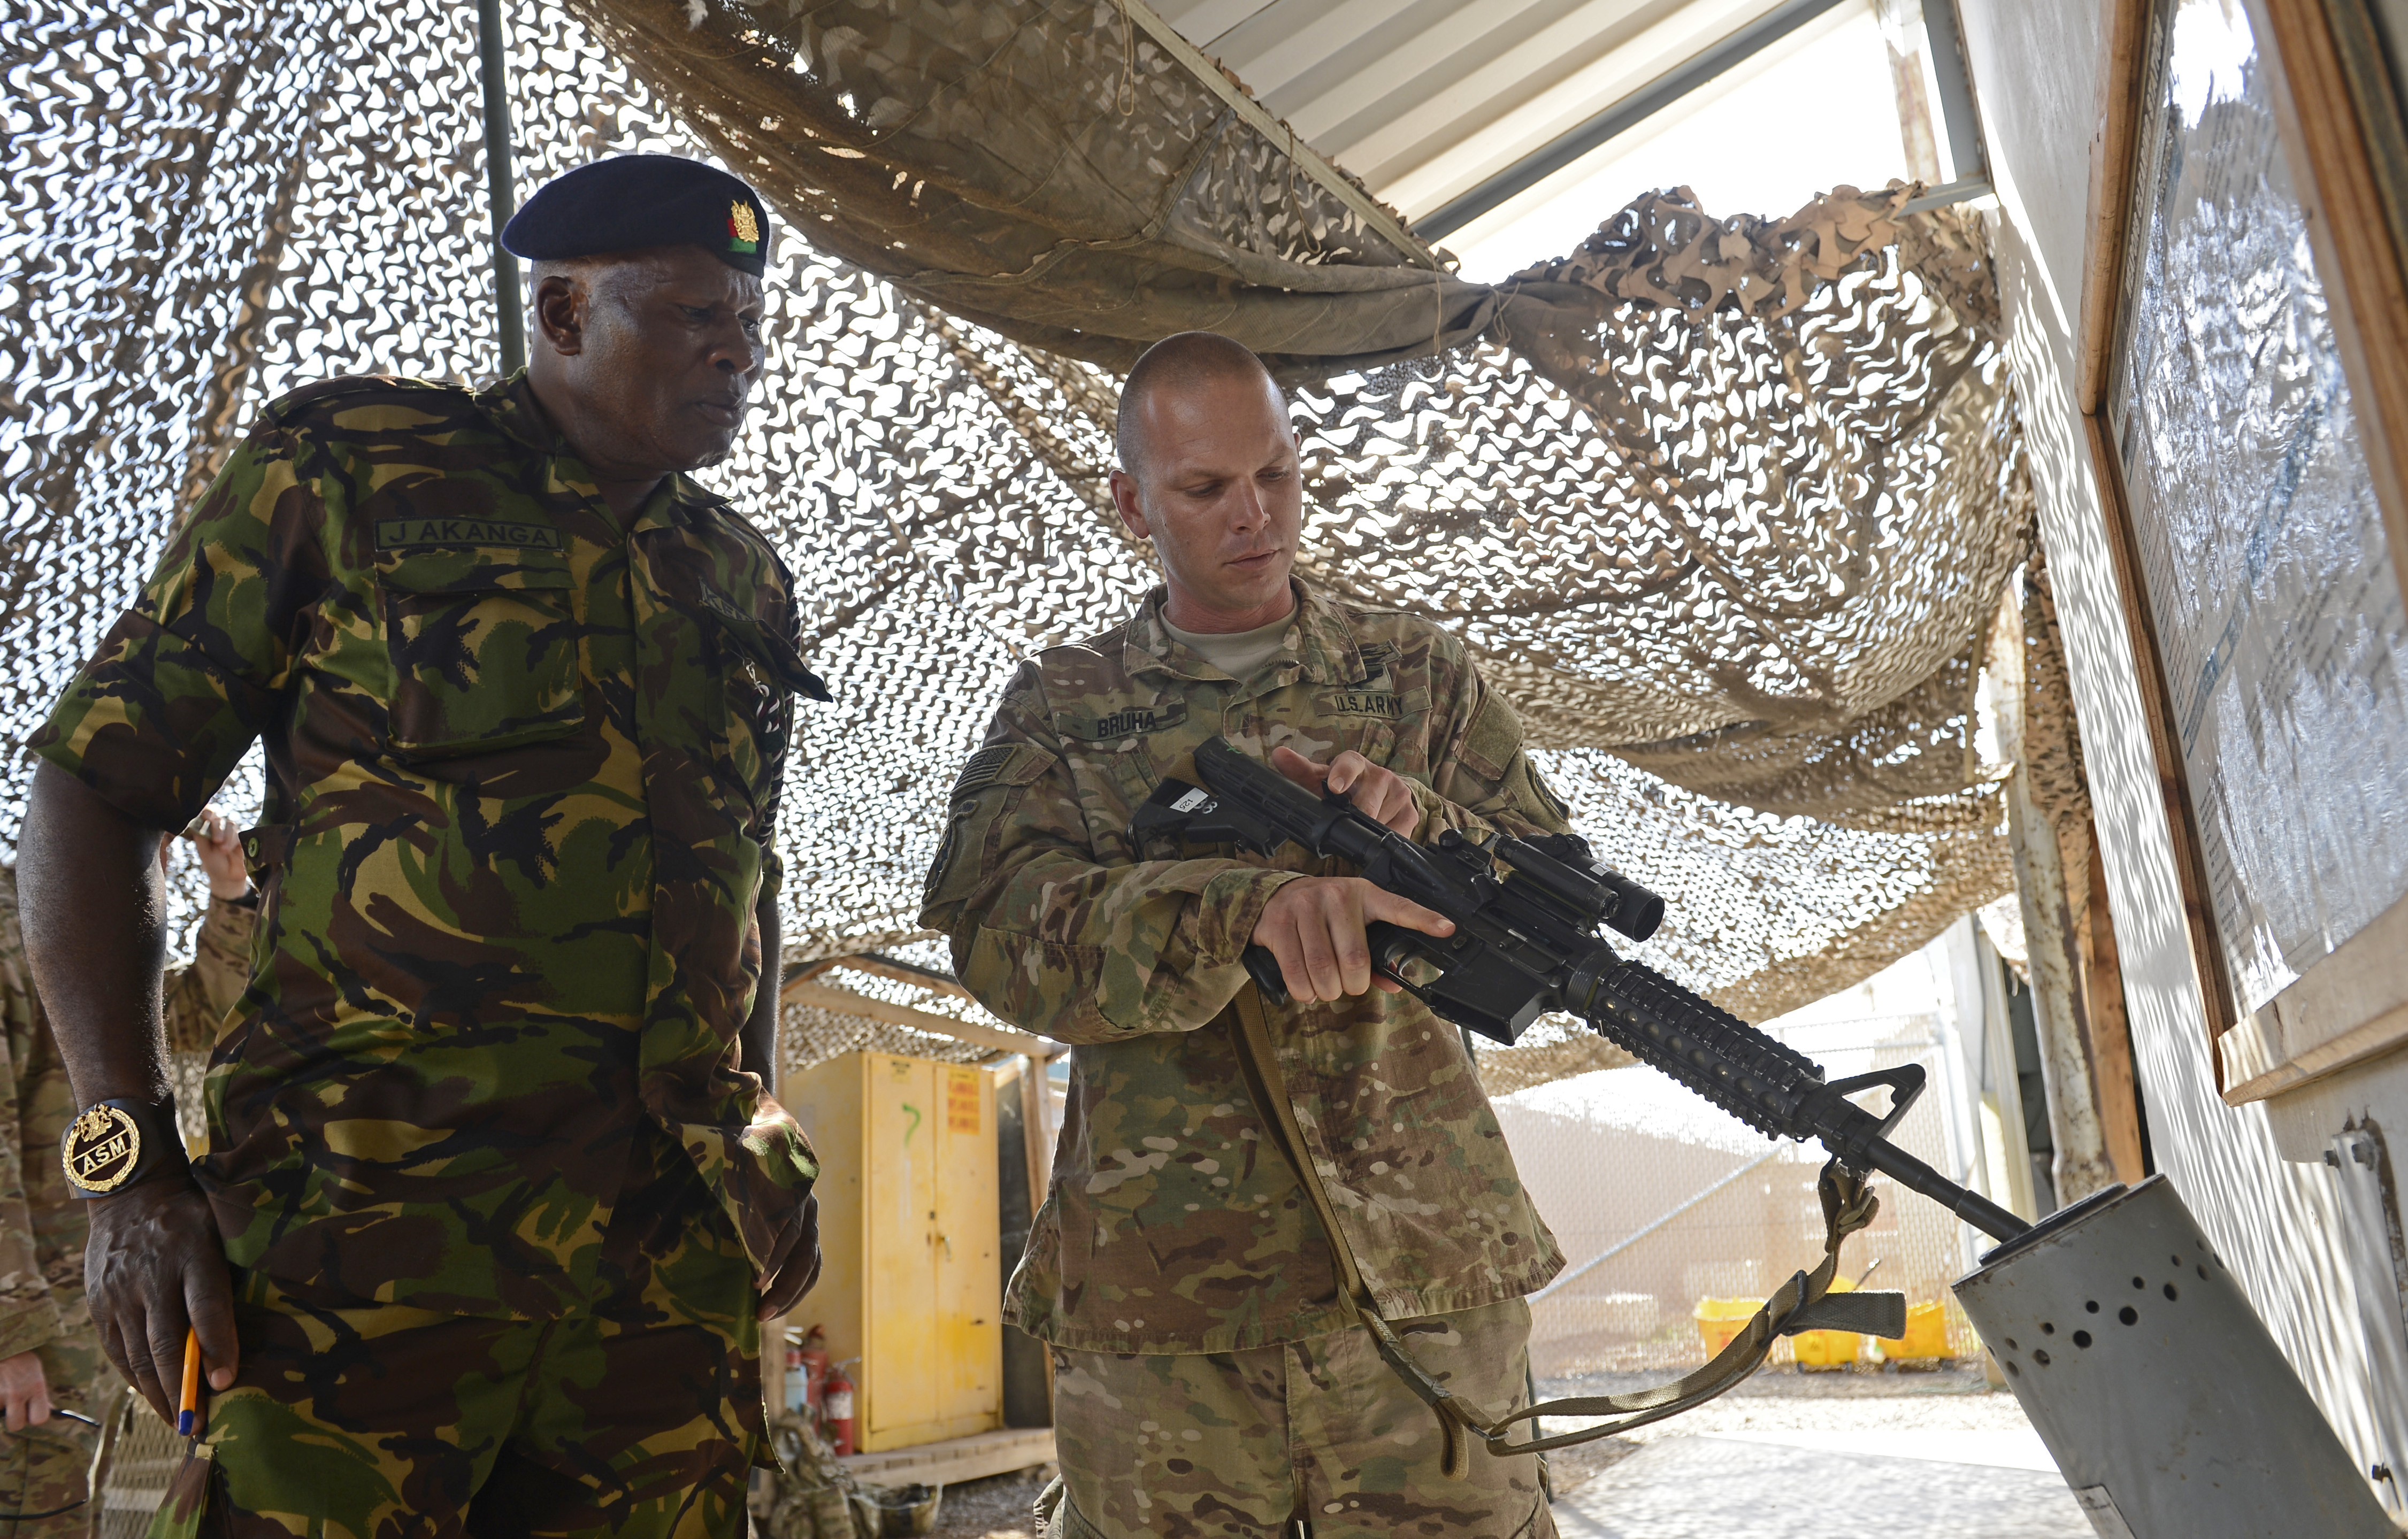 U.S. Army Sgt. 1st Class Adam Bruha, 2-124 Bravo Company acting first sergeant, demonstrates the U.S. Army's method for clearing and securing a weapon for Kenya Army Warrant Officer James Omollo, Kenya Army sergeant major Feb. 10, 2016, at Camp Lemonnier, Djibouti. The four KDF SELs consisted of Muthoka and the ranking enlisted member of their army, air force and navy. (U.S. Air Force photo by Senior Airman Peter Thompson)